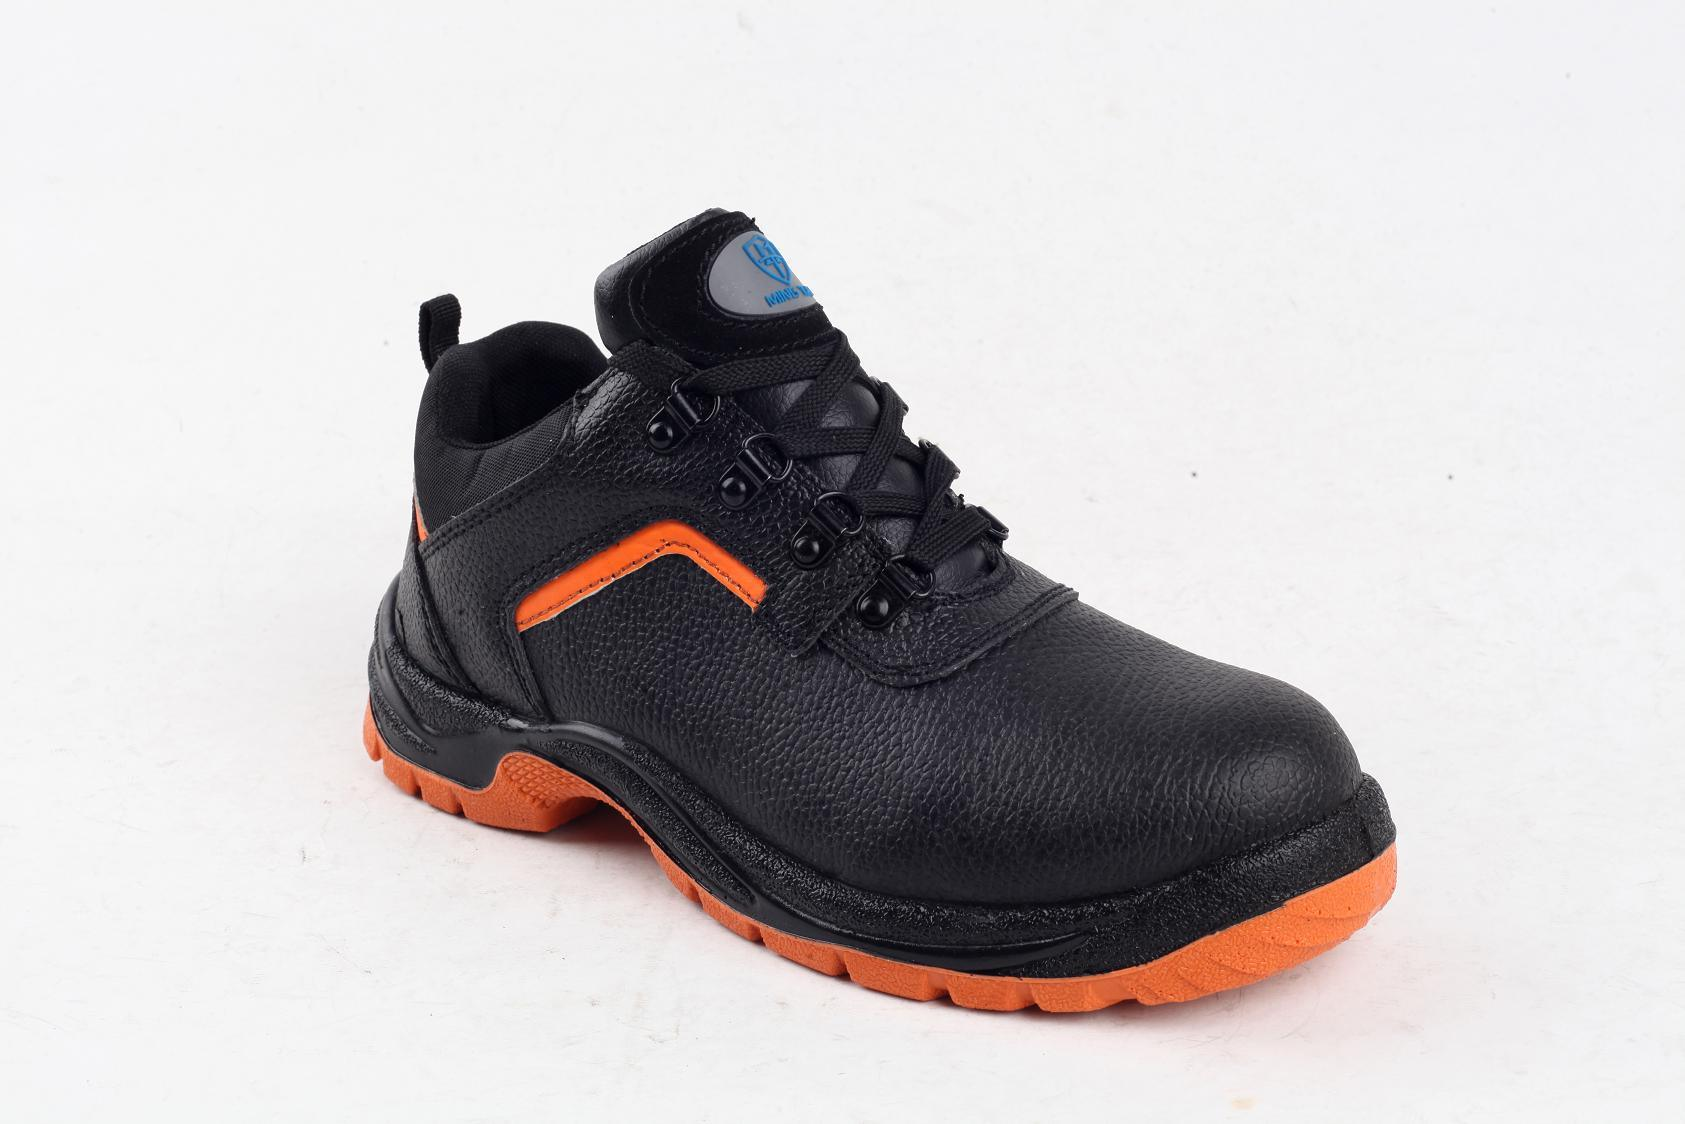 S1p Full Grain Leather/Cow Split Leather Safety Shoes Sy5008